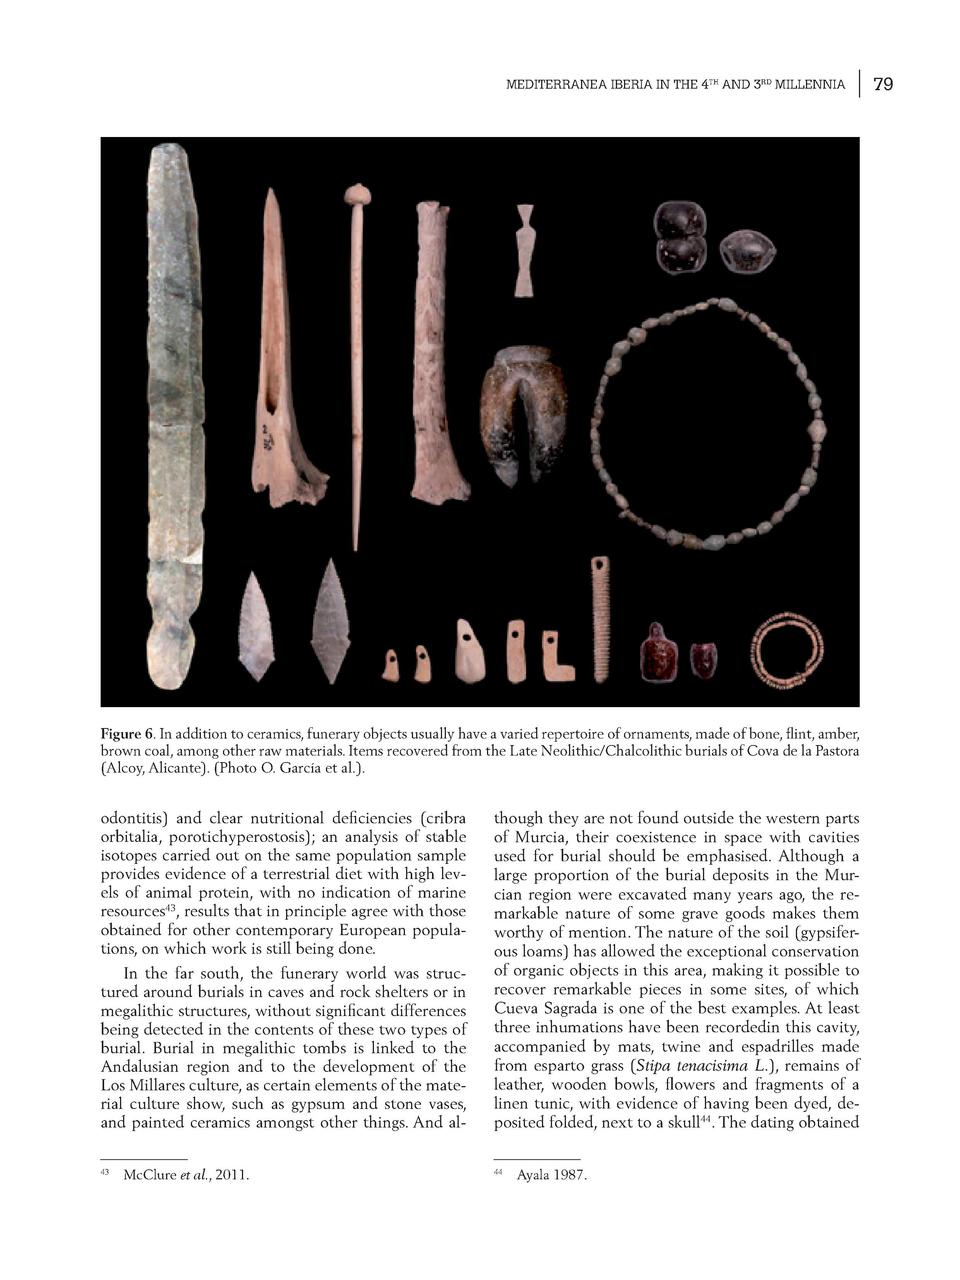 MEDITERRANEA IBERIA IN THE 4TH AND 3RD MILLENNIA  Figure 6. In addition to ceramics, funerary objects usually have a varie...